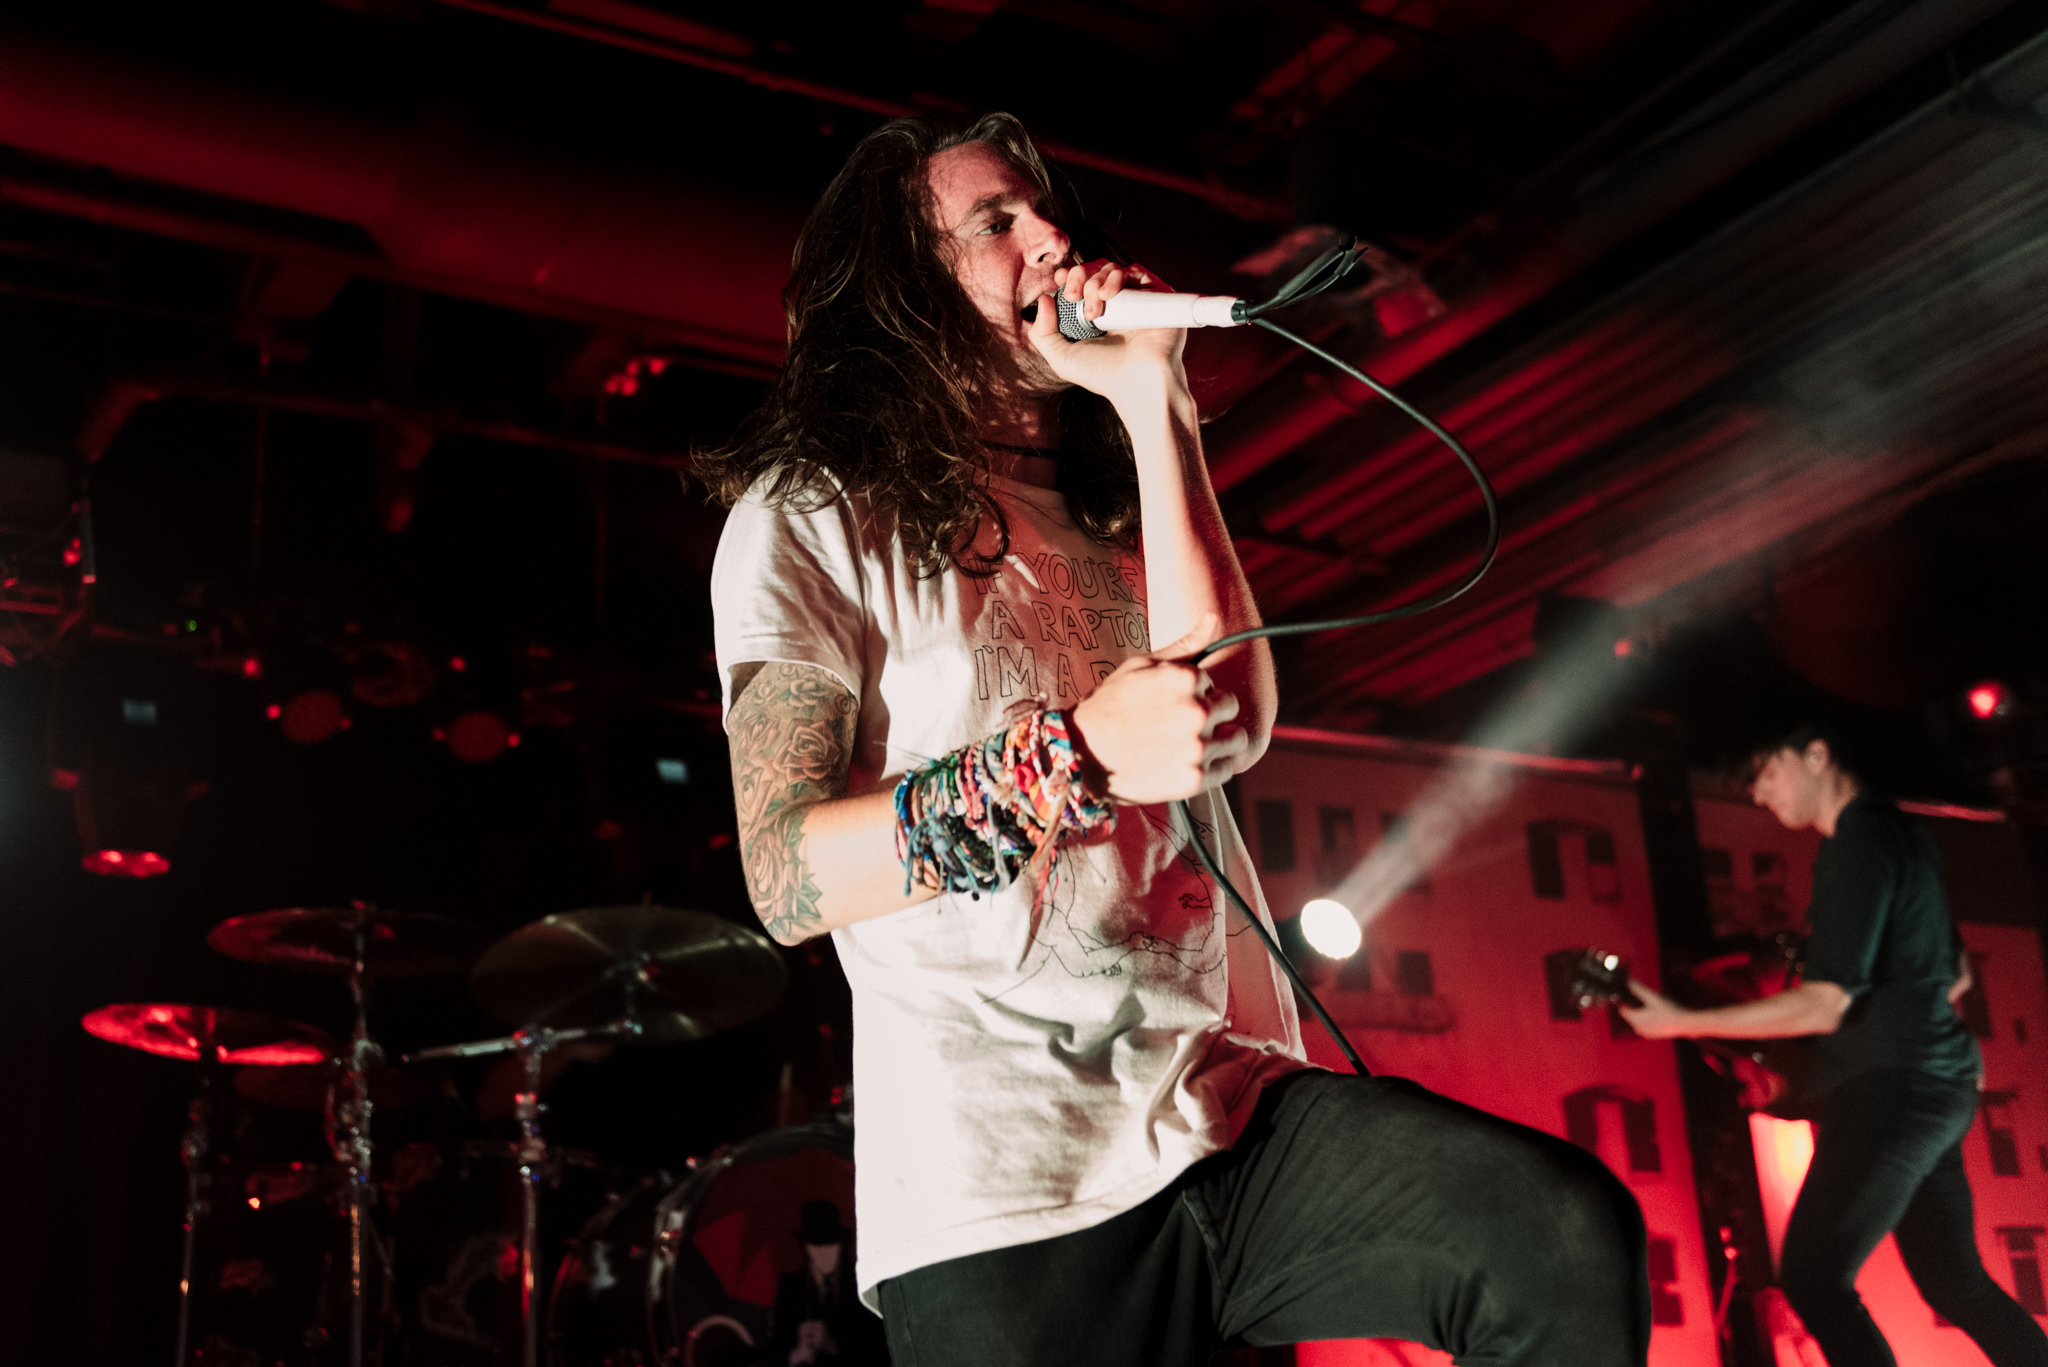 Mayday-Parade-Stars-and-Scars-25